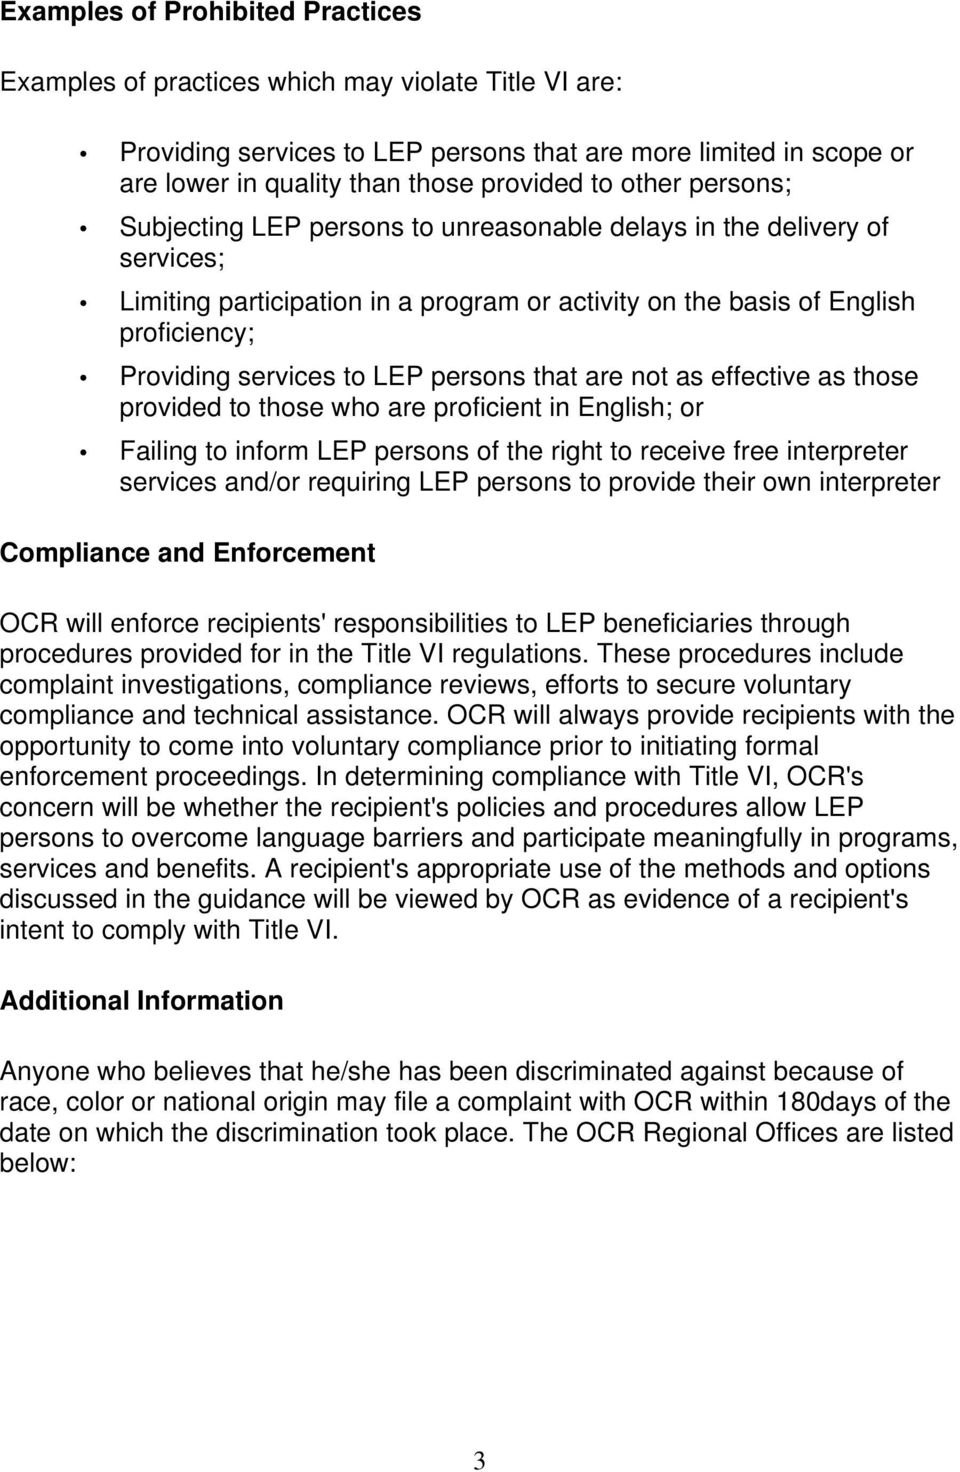 LEP persons that are not as effective as those provided to those who are proficient in English; or Failing to inform LEP persons of the right to receive free interpreter services and/or requiring LEP